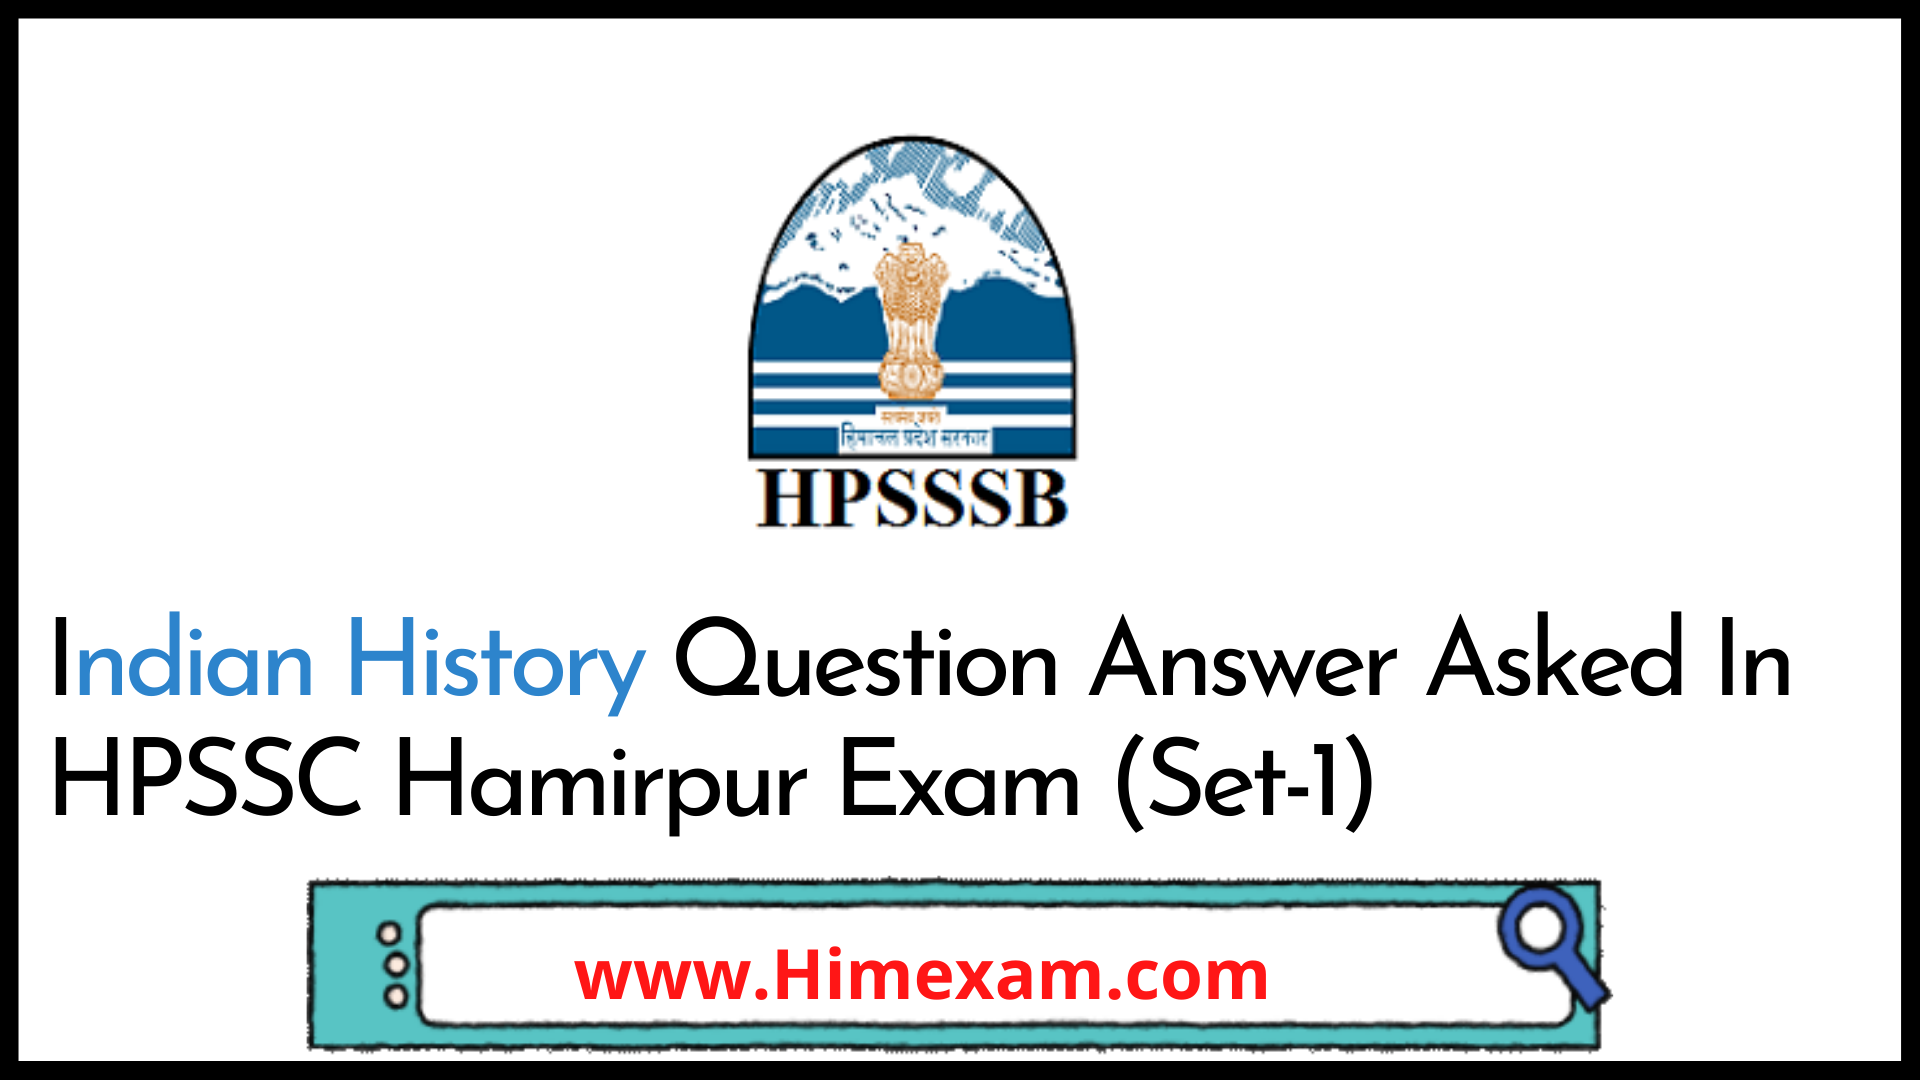 Indian History Question Answer Asked In HPSSC Hamirpur Exam (Set-1)